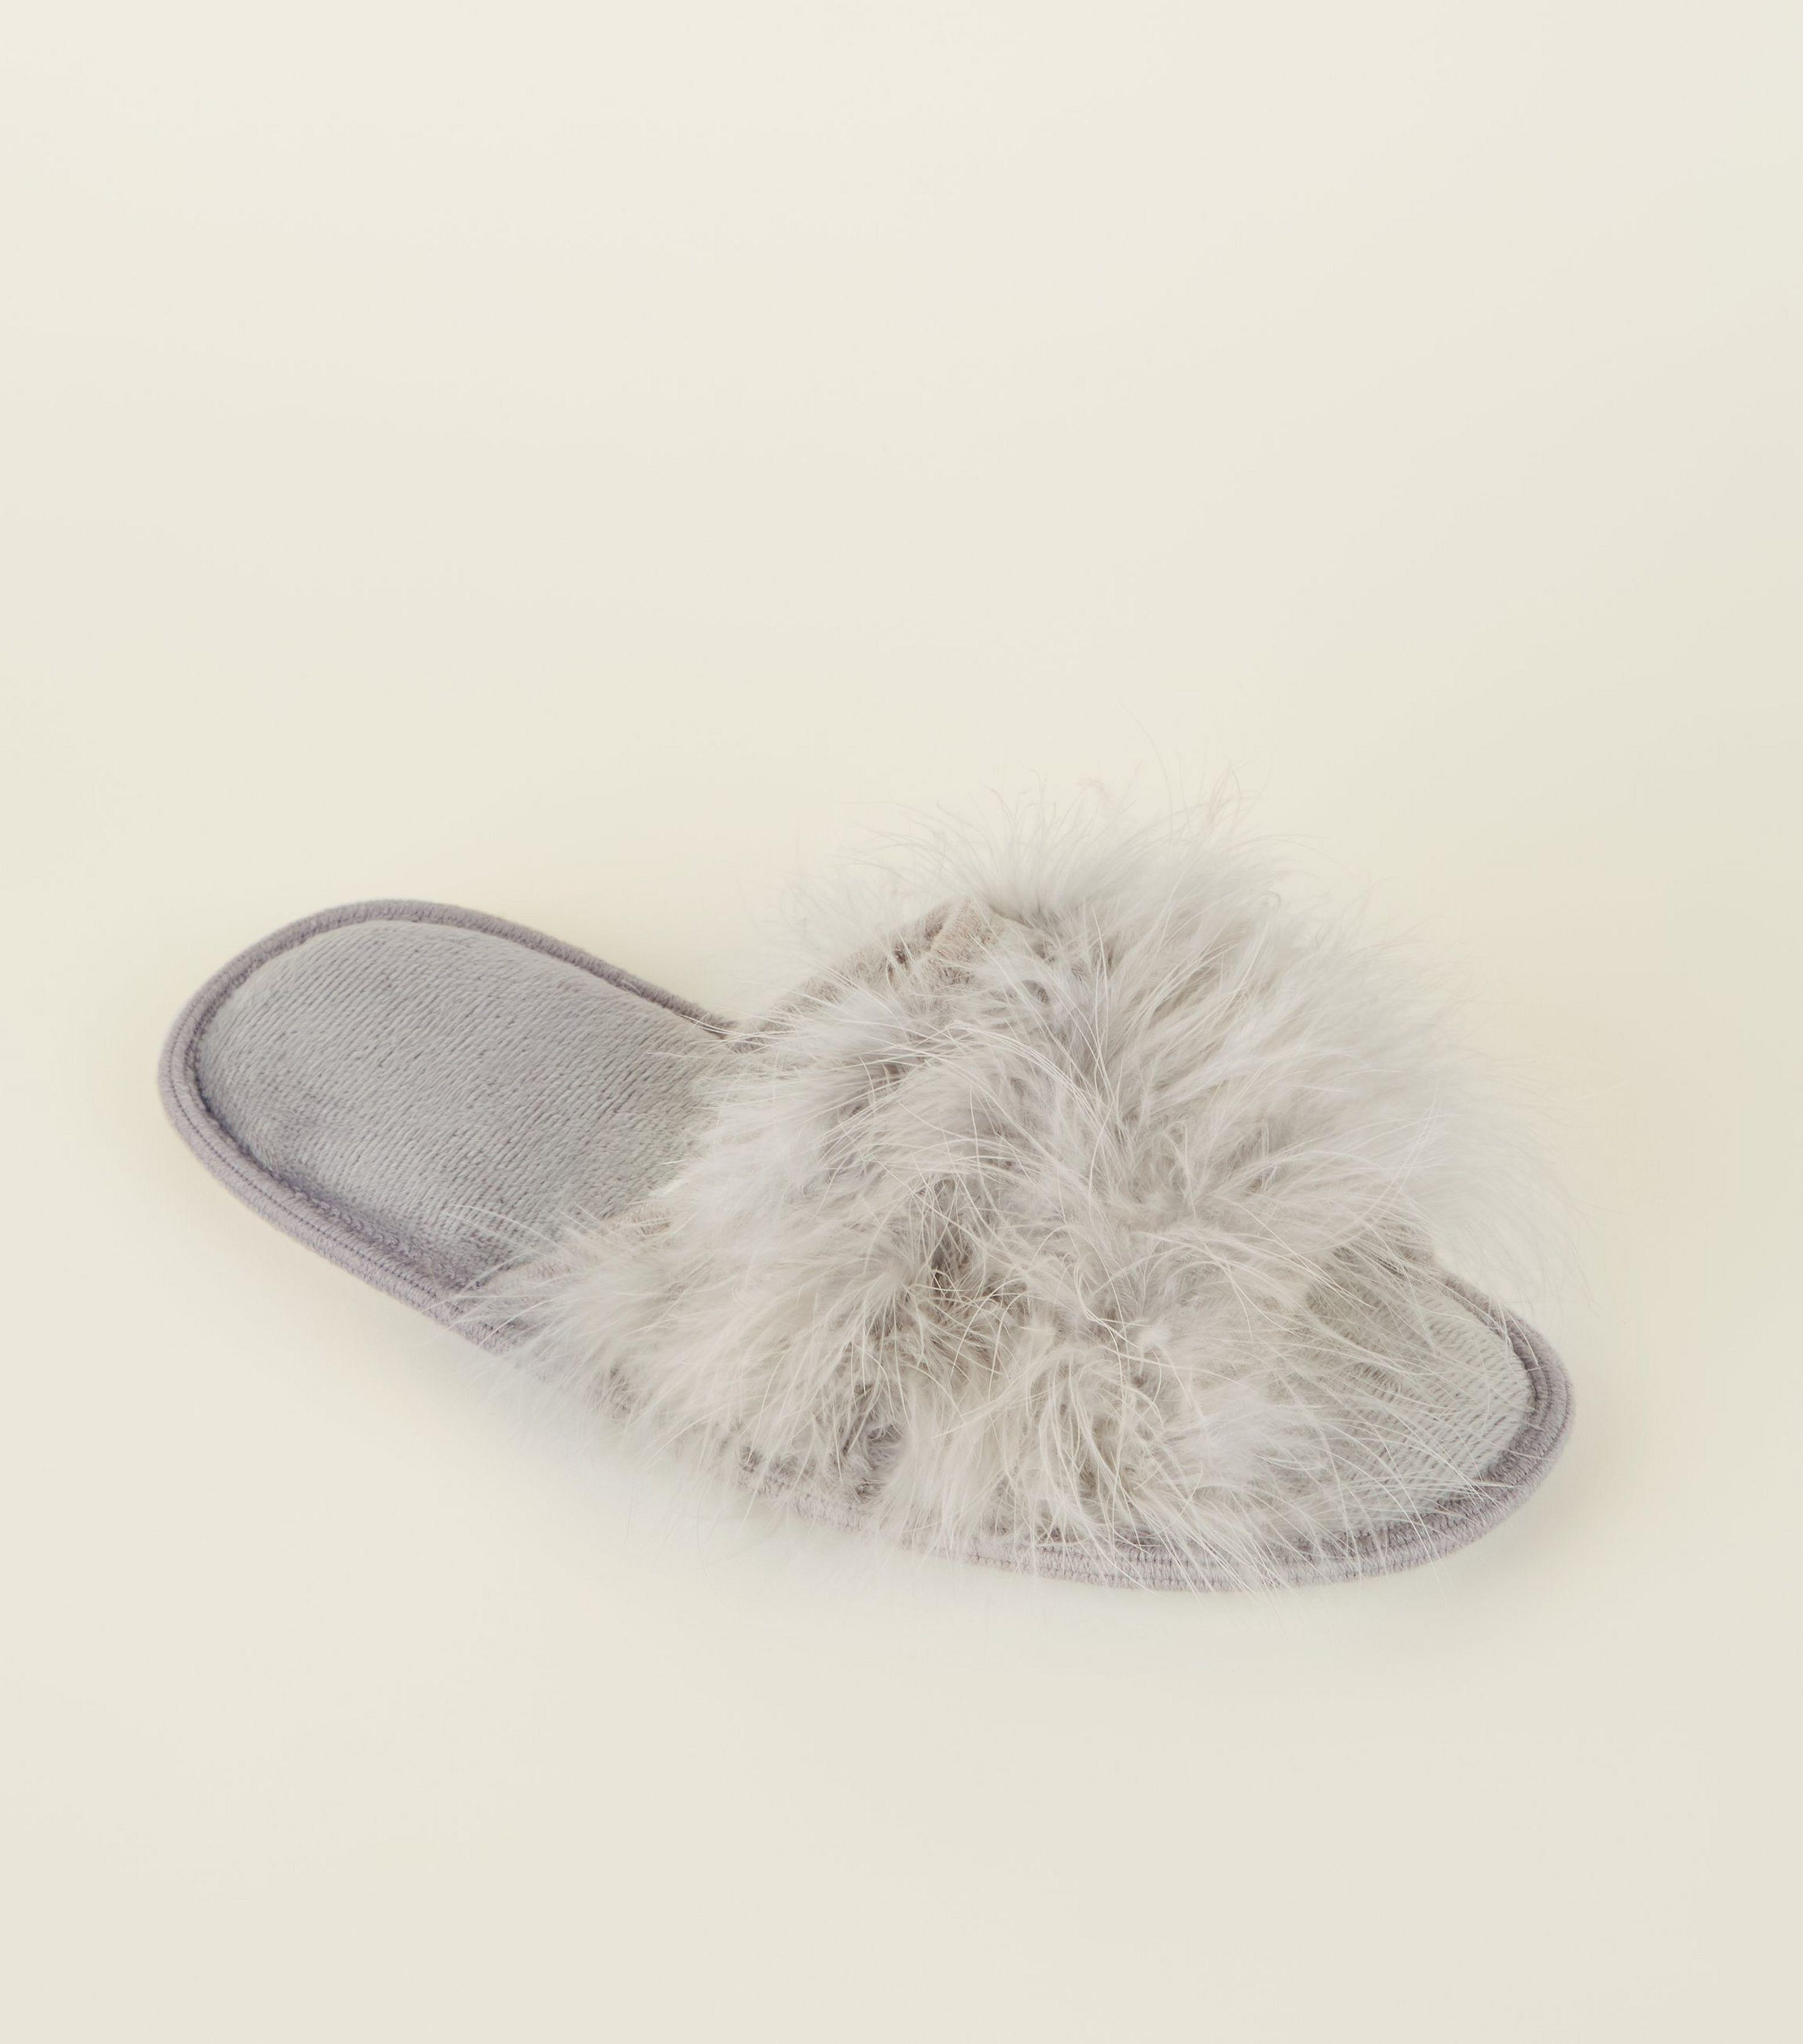 cd4fd520c418 New Look Grey Fluffy Feather Slider Slippers in Gray - Lyst